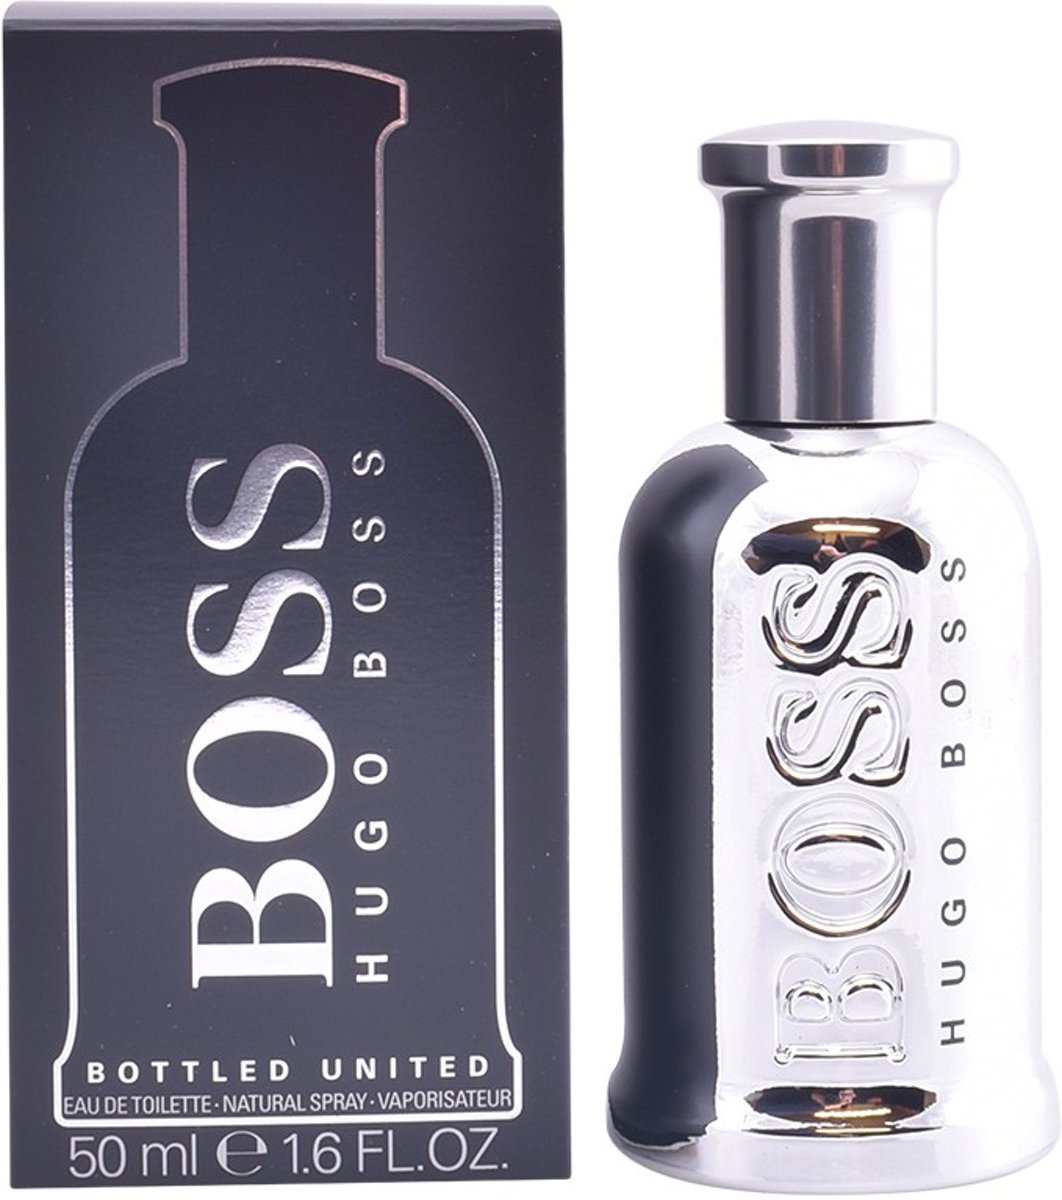 MULTI BUNDEL 2 stuks BOSS BOTTLED UNITED Eau de Toilette Spray 50 ml